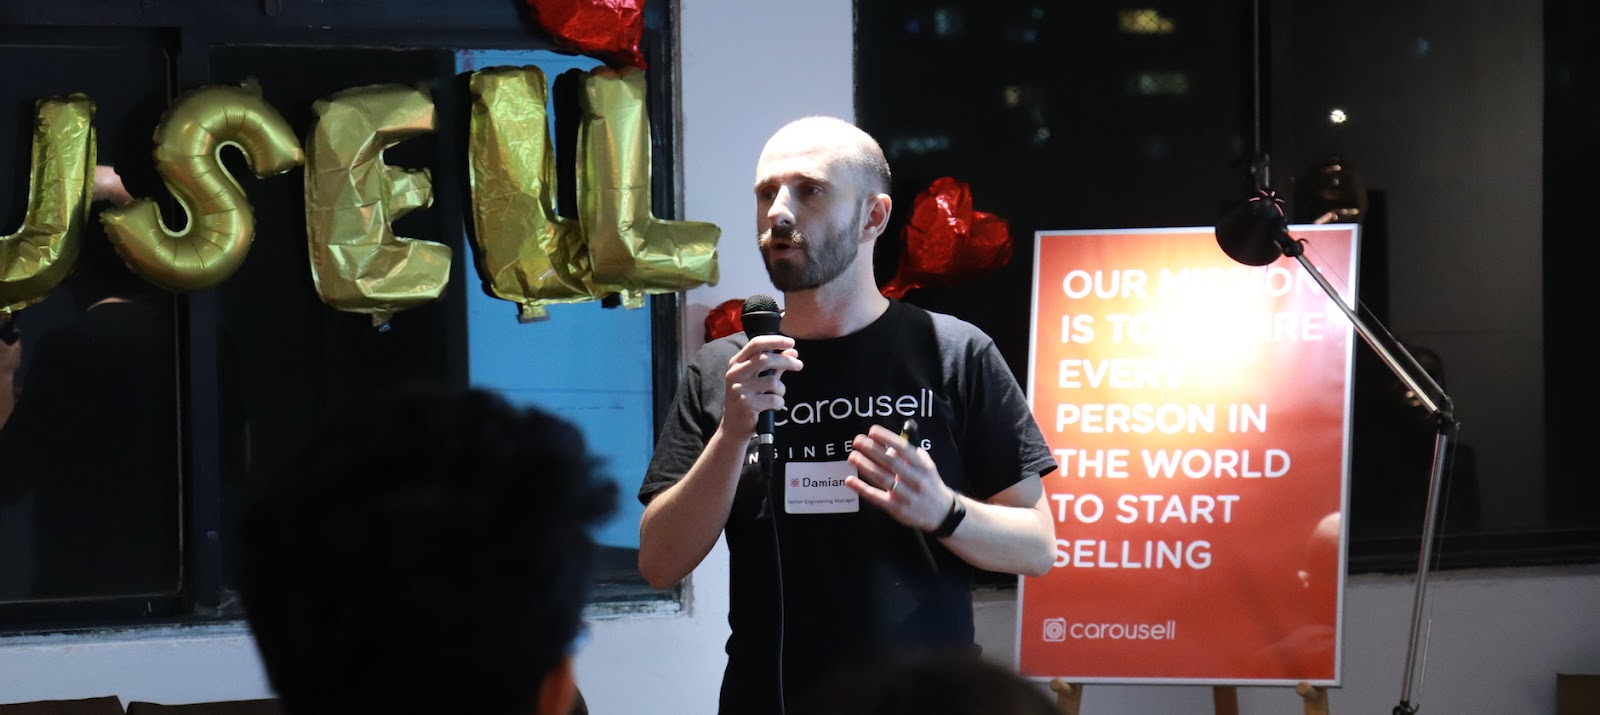 Carousell 旋轉拍賣的 Senior Engineering Manager Damiano 講解 Taiwan Developer Center 的主要組成